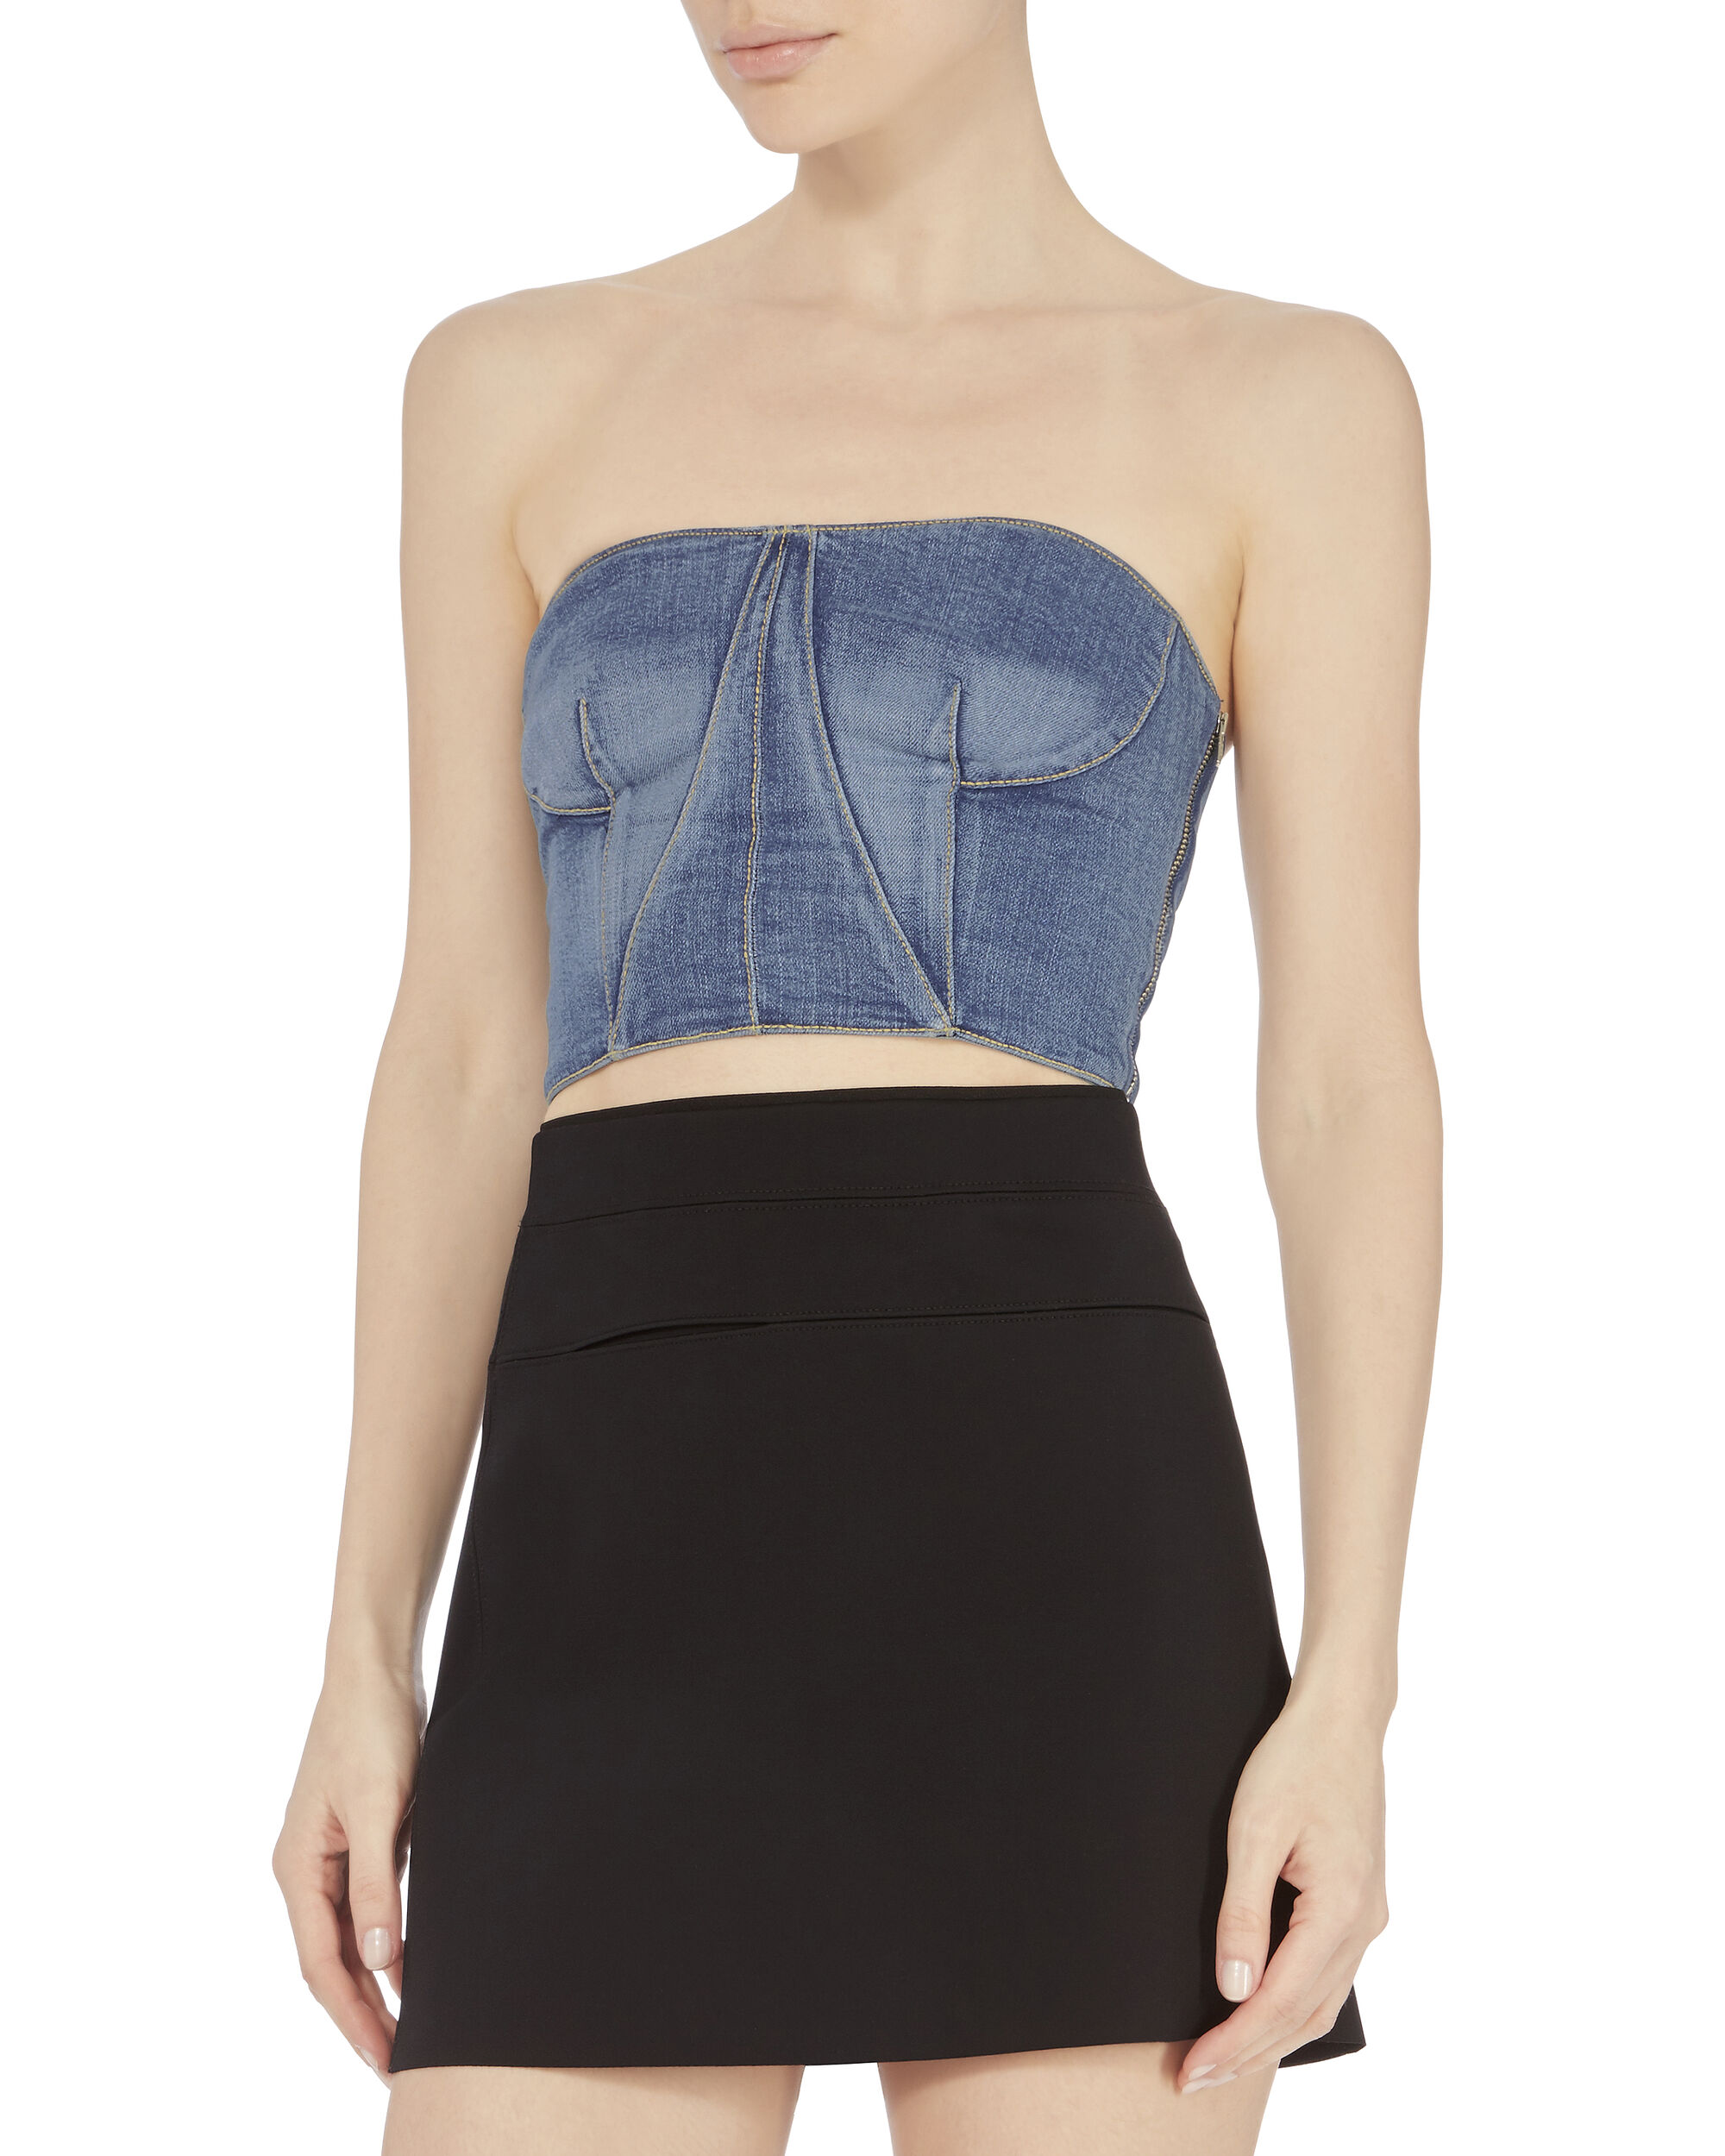 Denim Bustier Top, BLUE-MED, hi-res